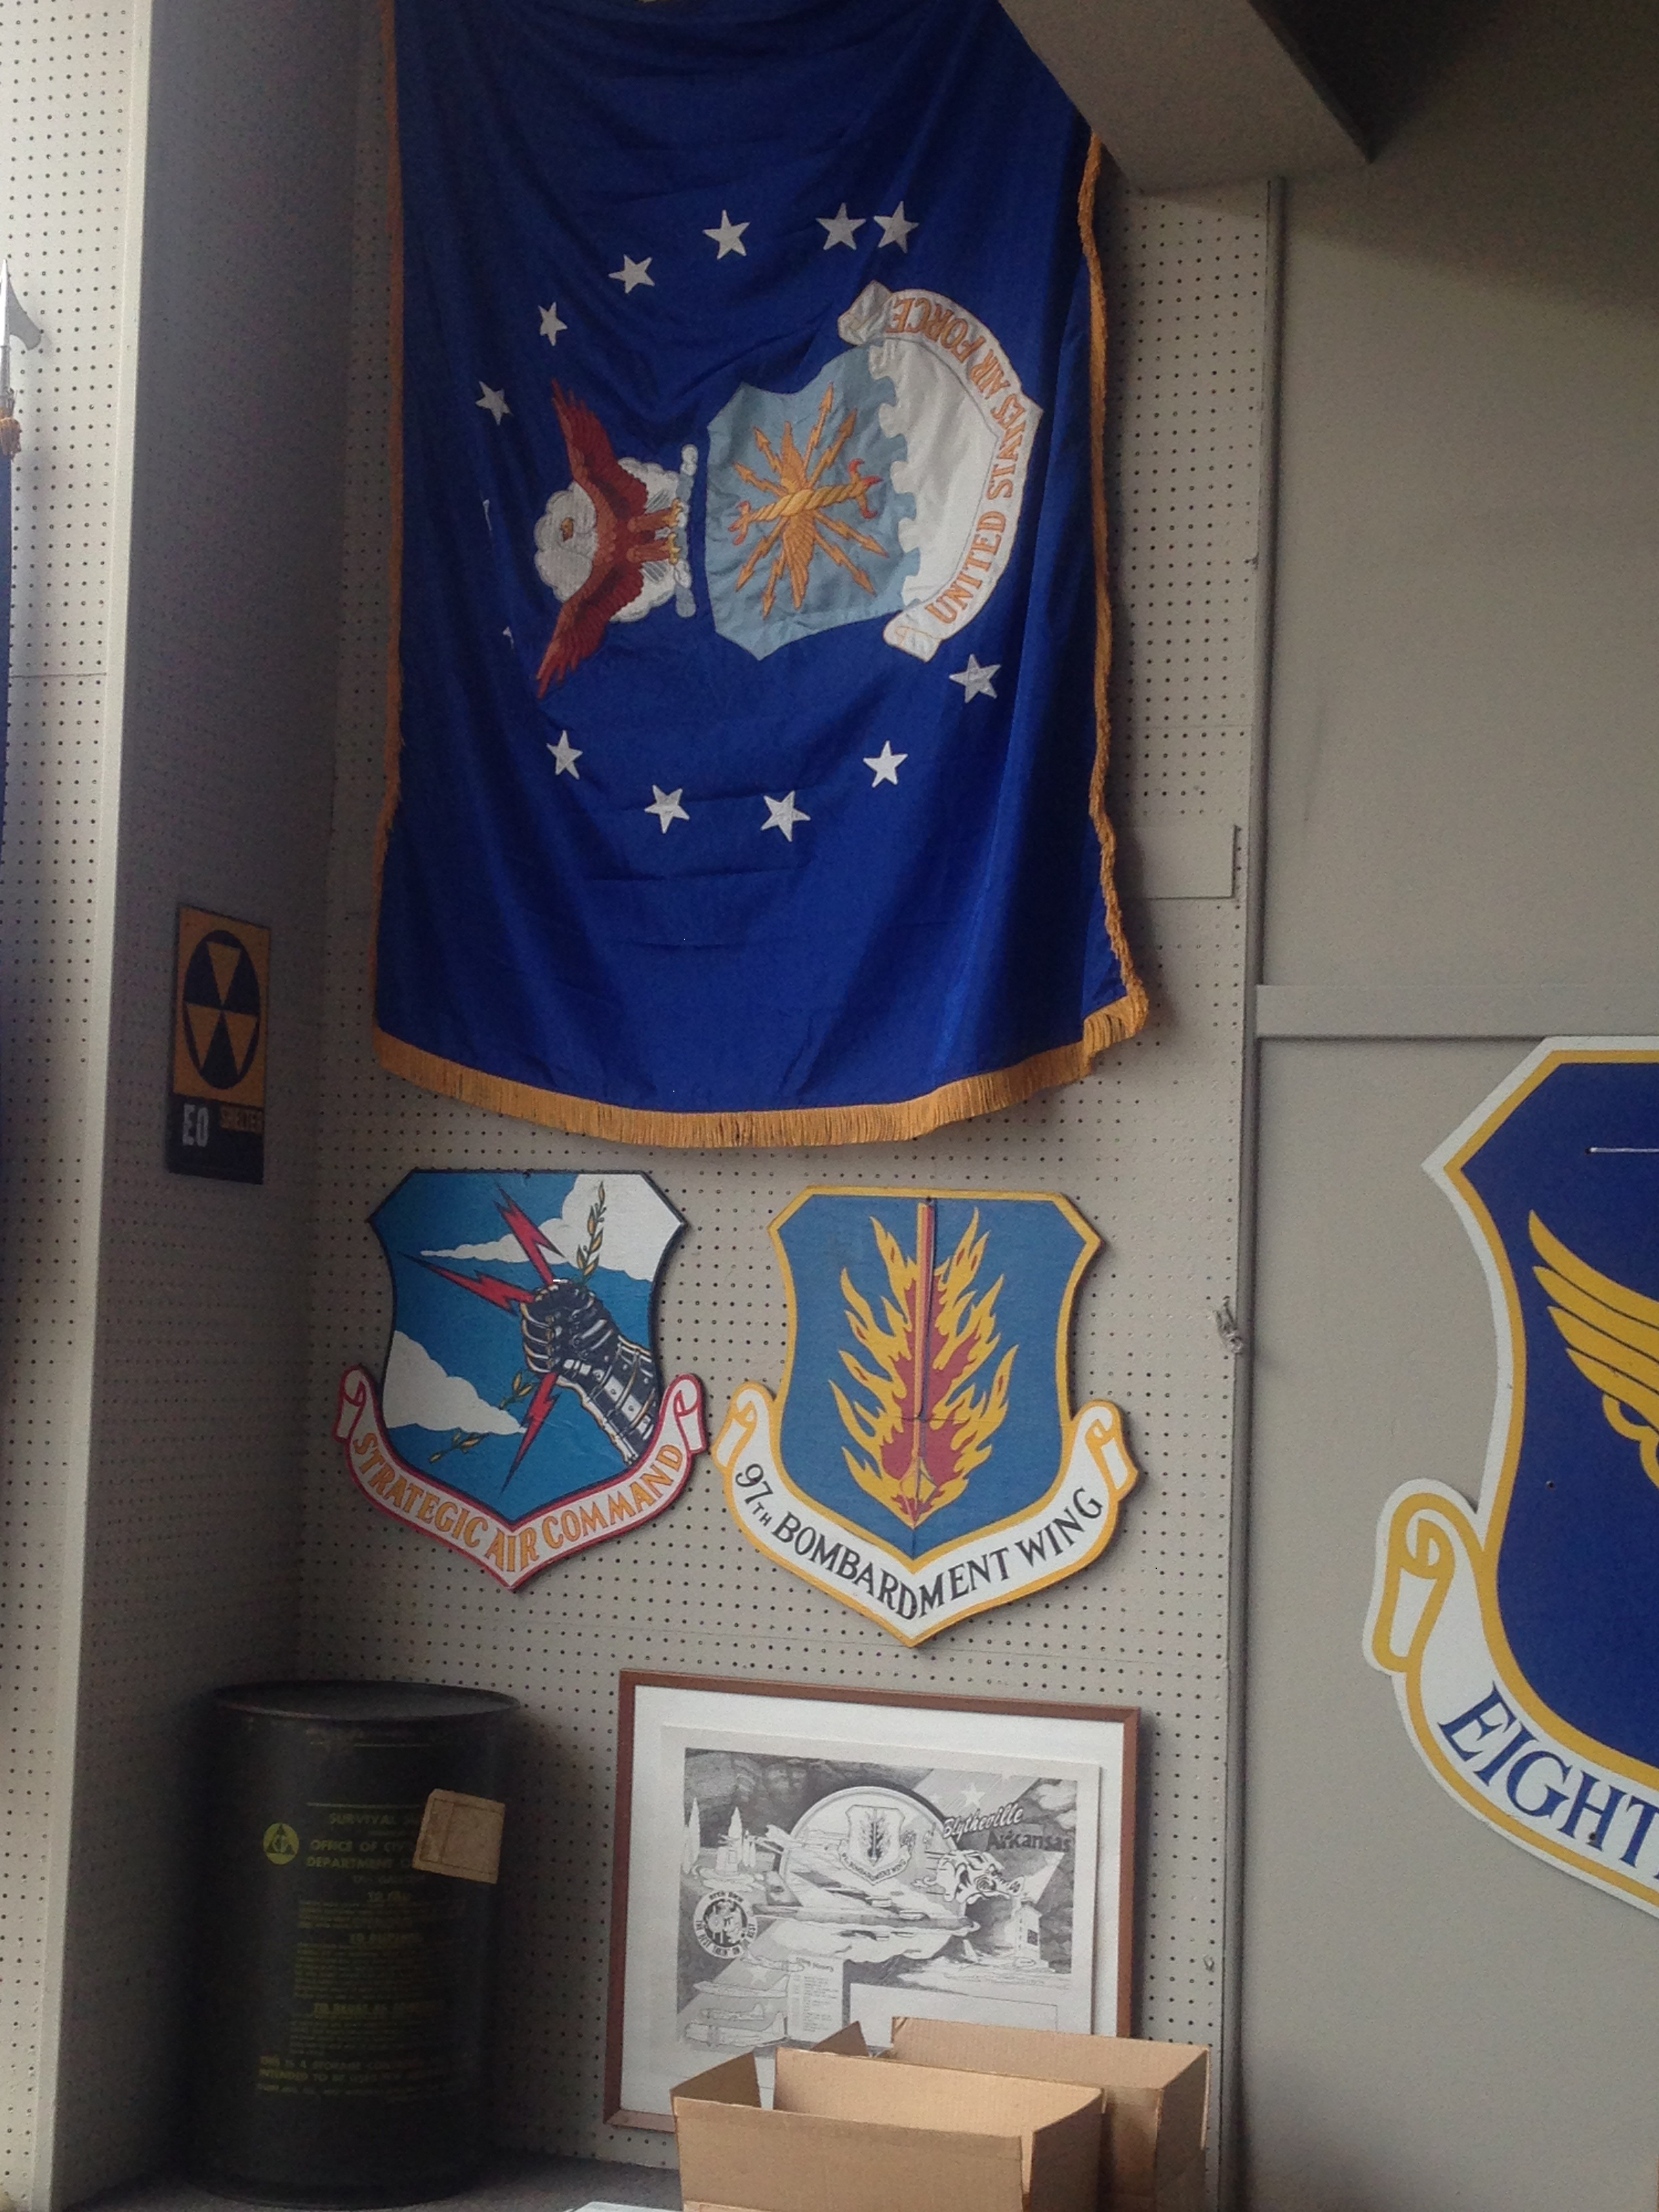 Air Force memorabilia from the Delta Gateway Museum in Blytheville, AR